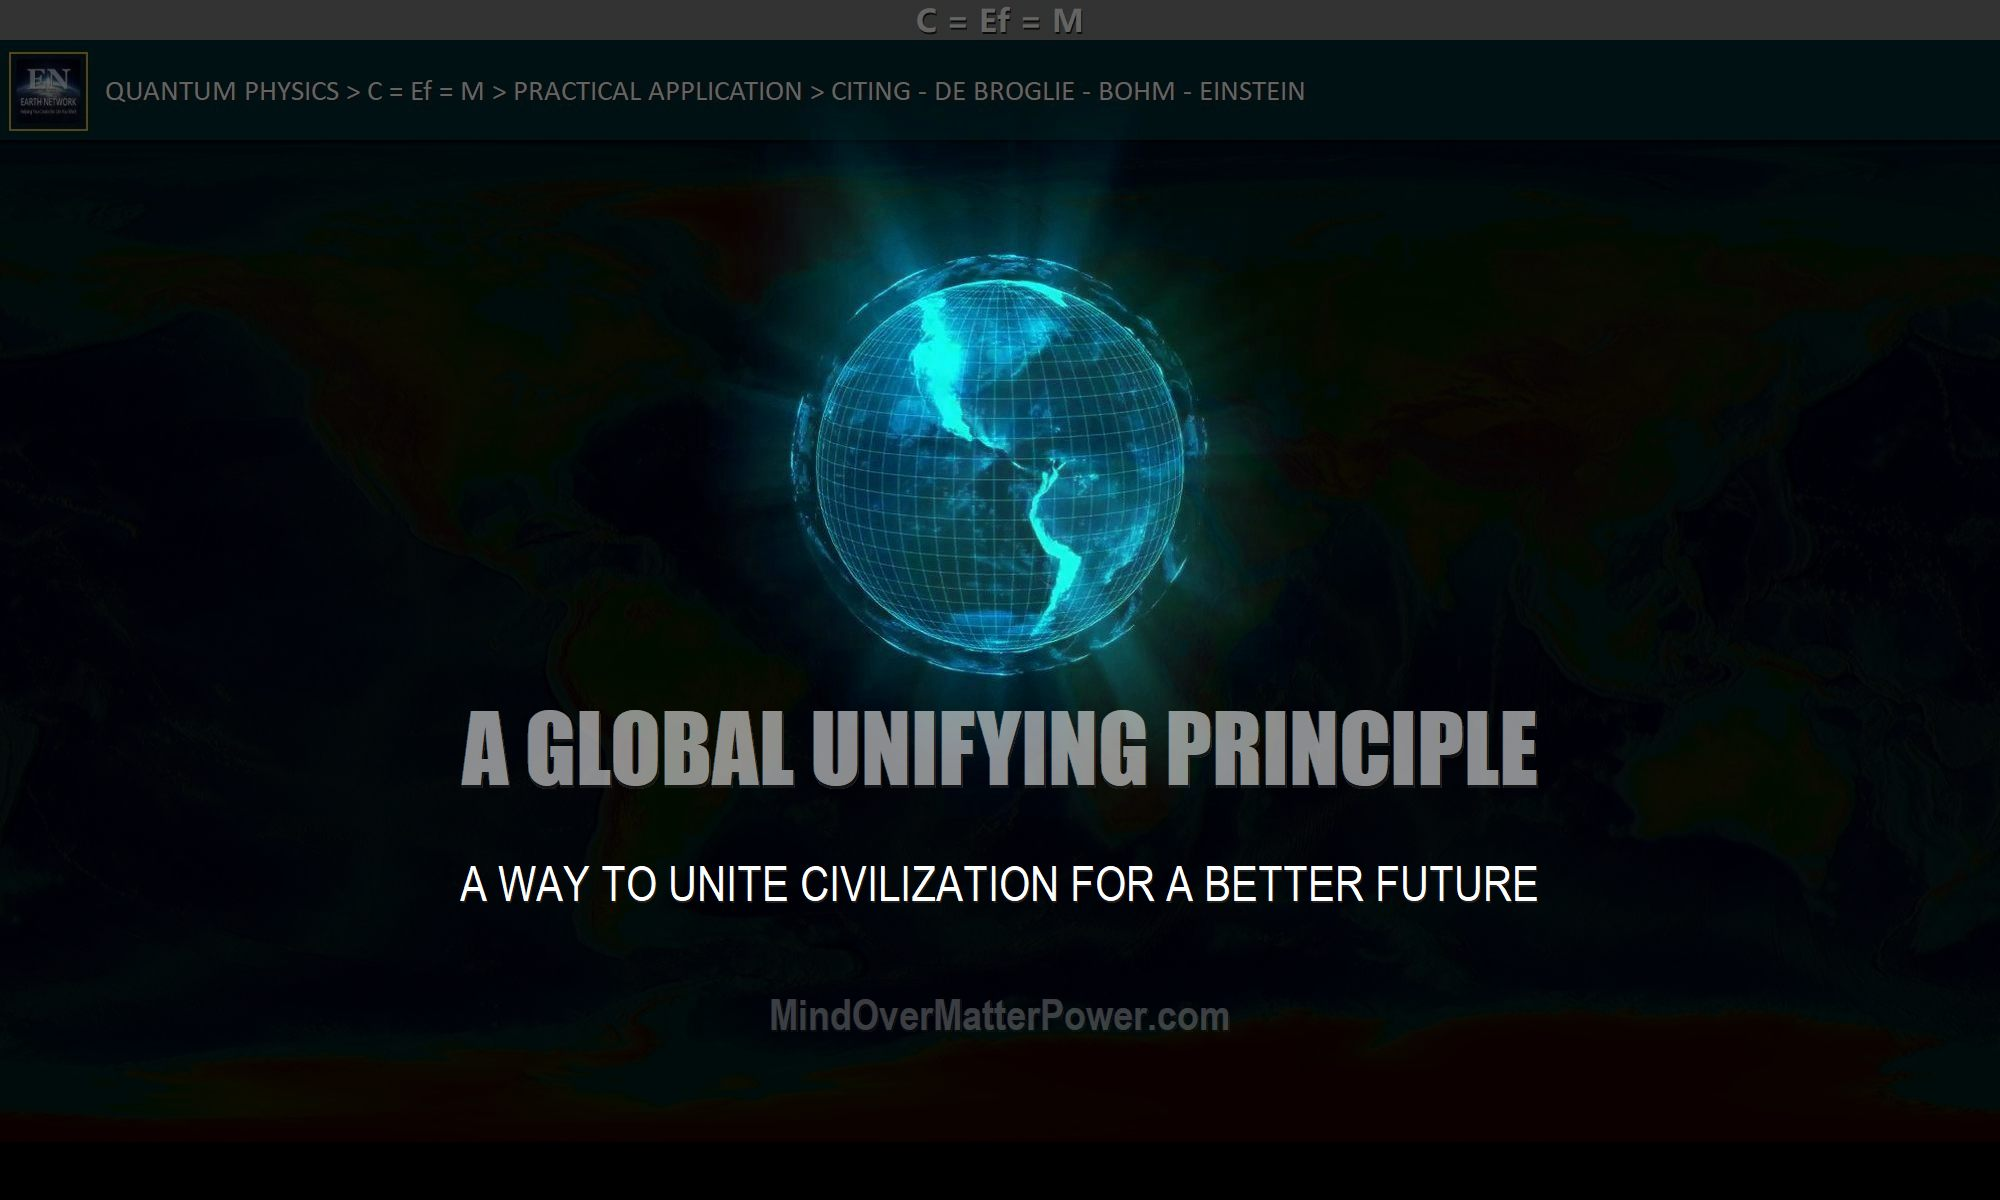 World-image-depicts-what-is-a-unifying-principle-a-way-to-unite-civilization-world-globe-create-a-new-better-future-for-humanity